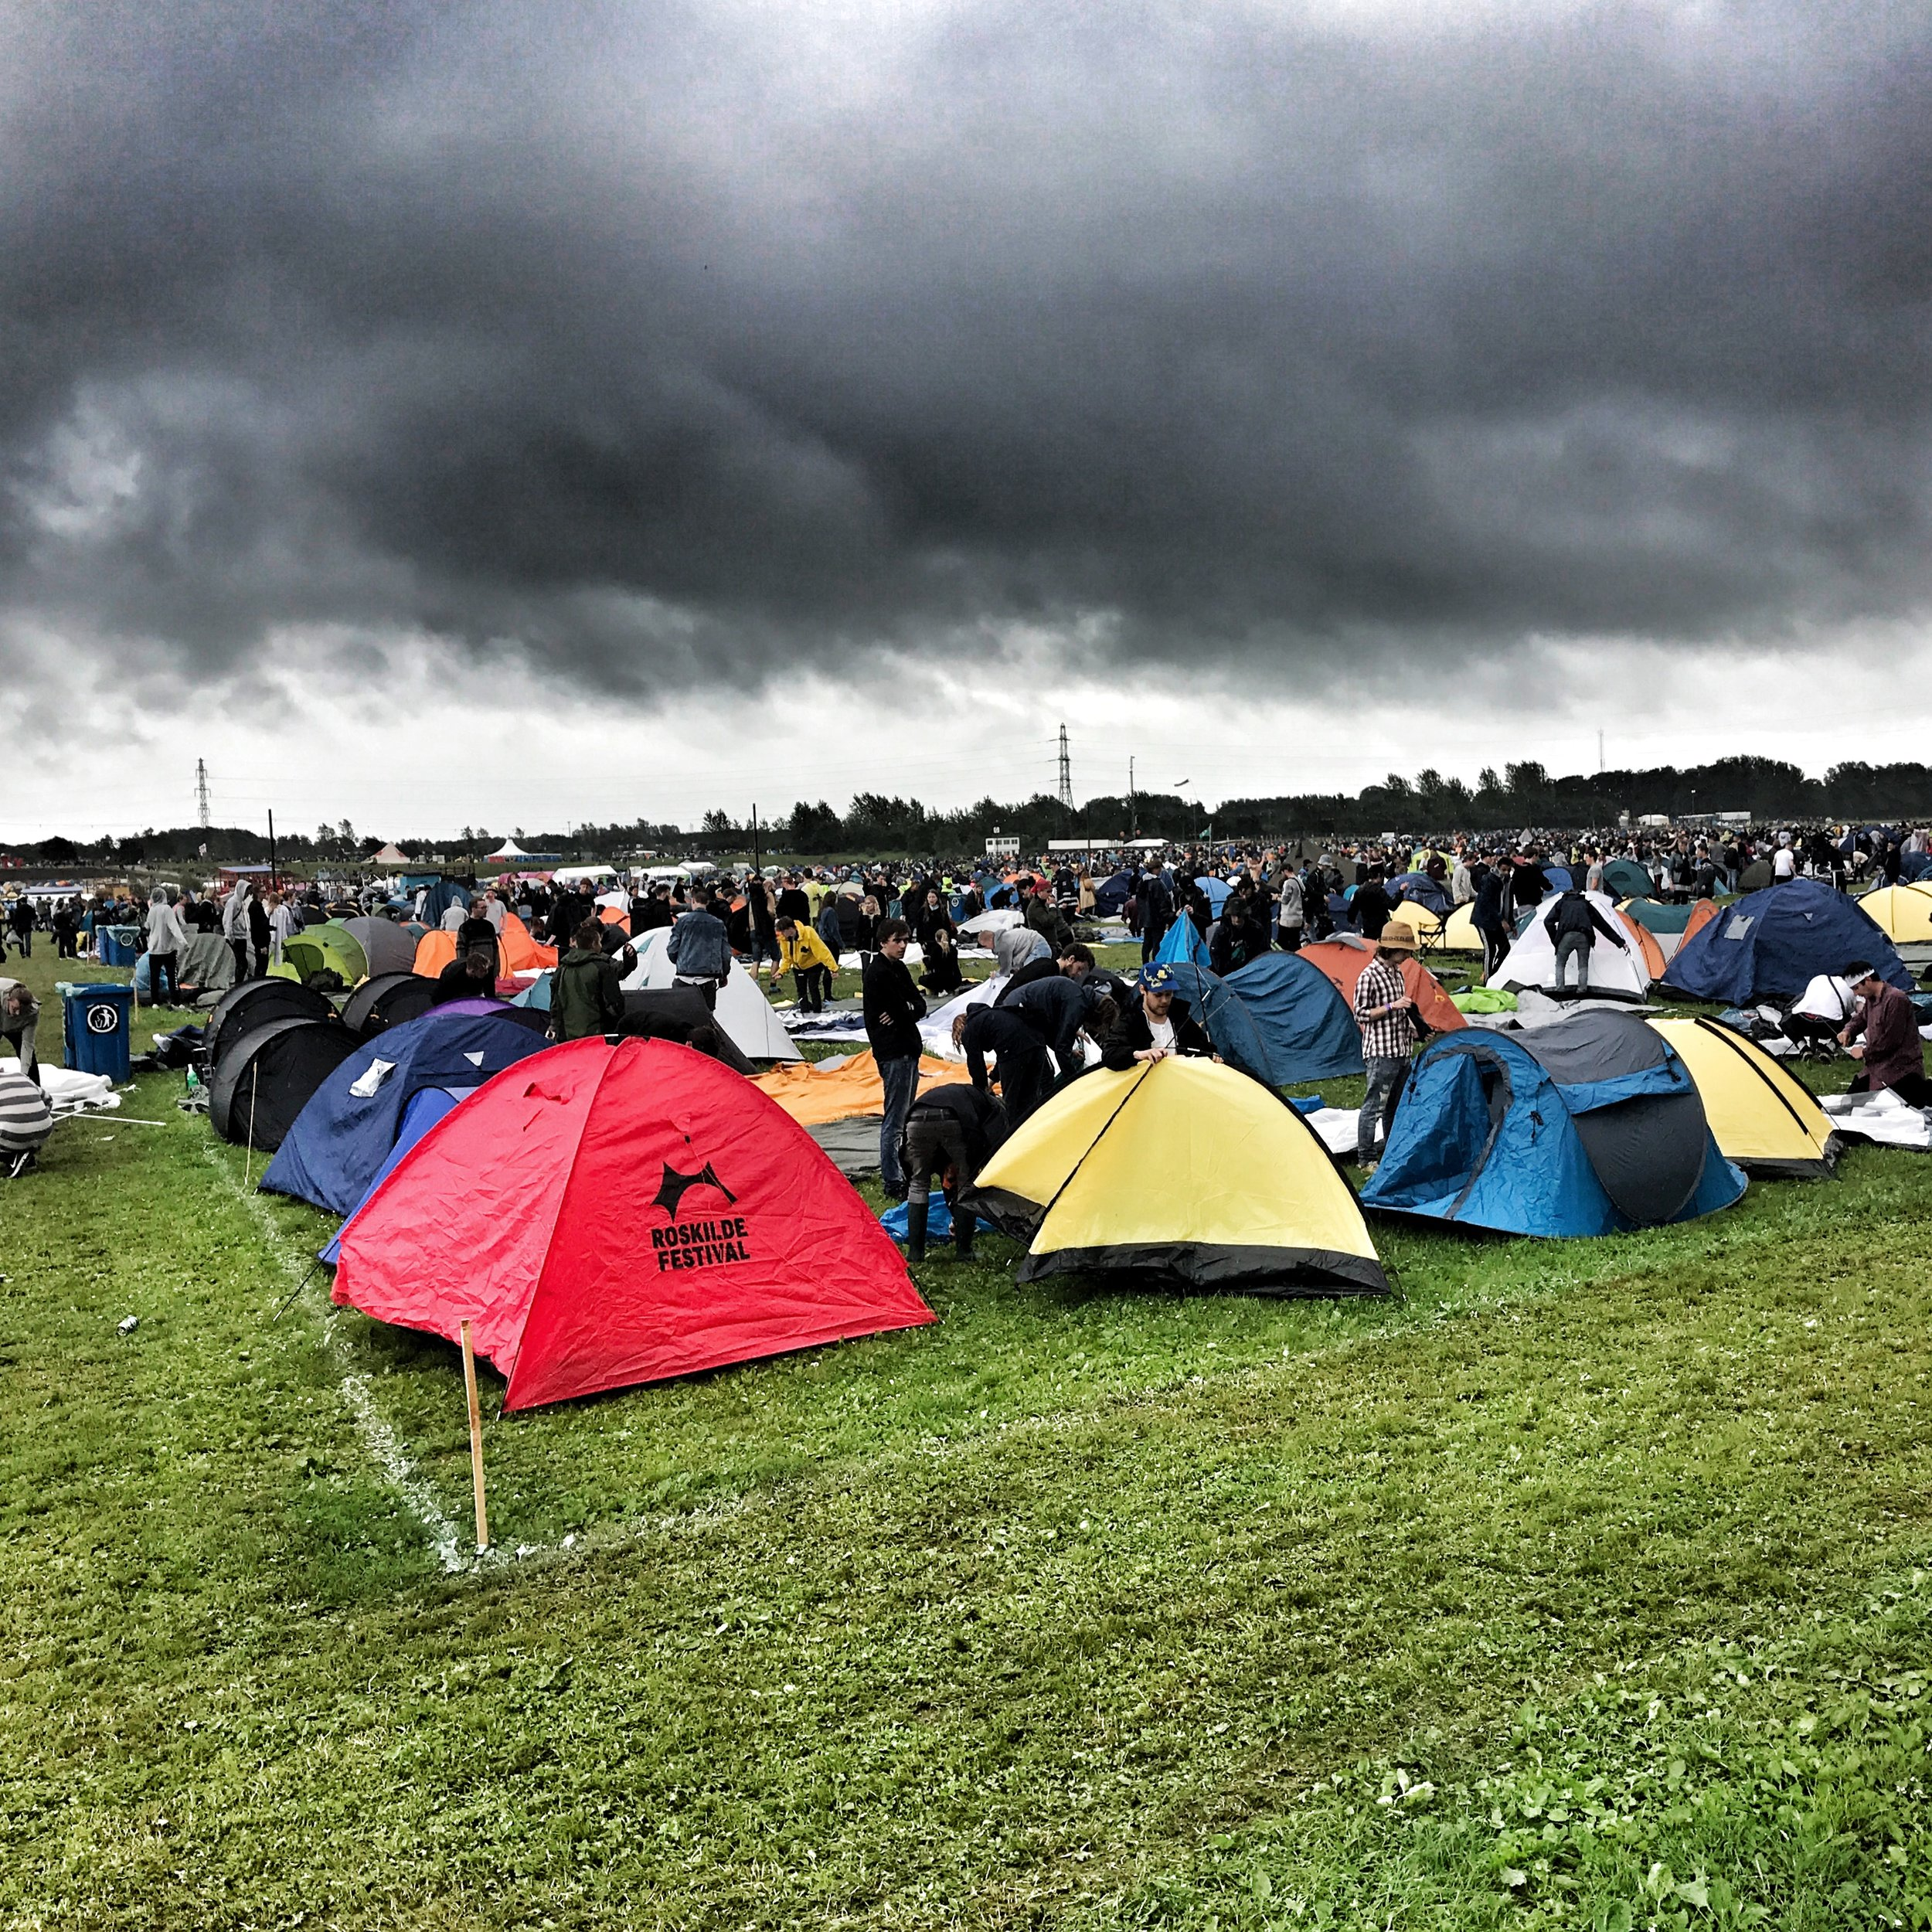 One of the many campsites at Roskilde - over 130,00 campers!